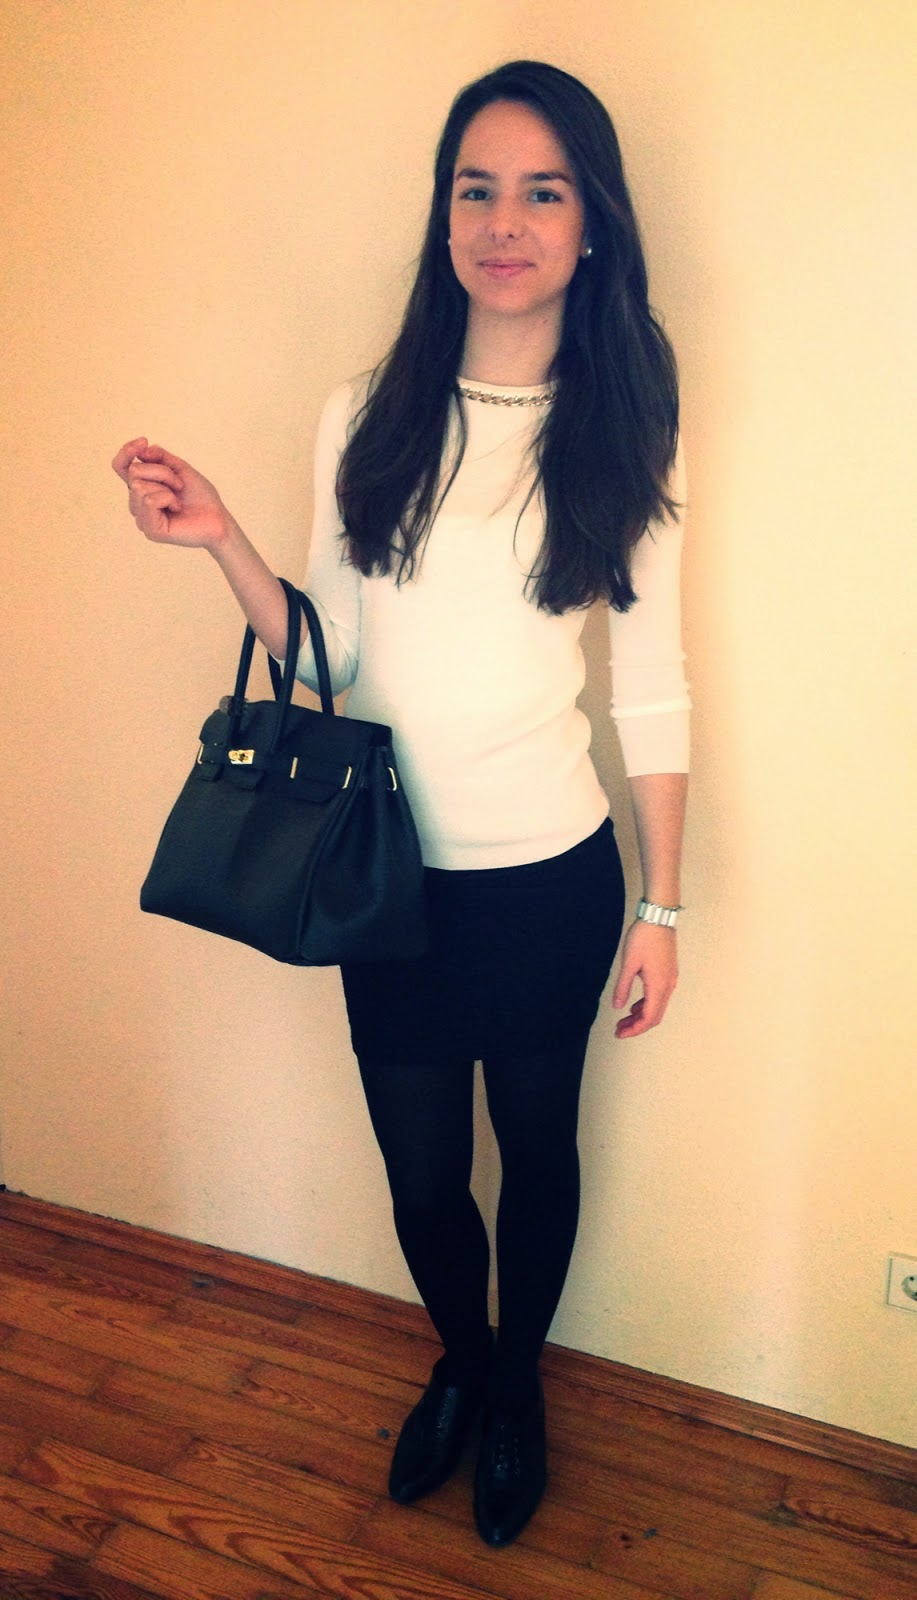 Zara Jersey Outfit of the Day